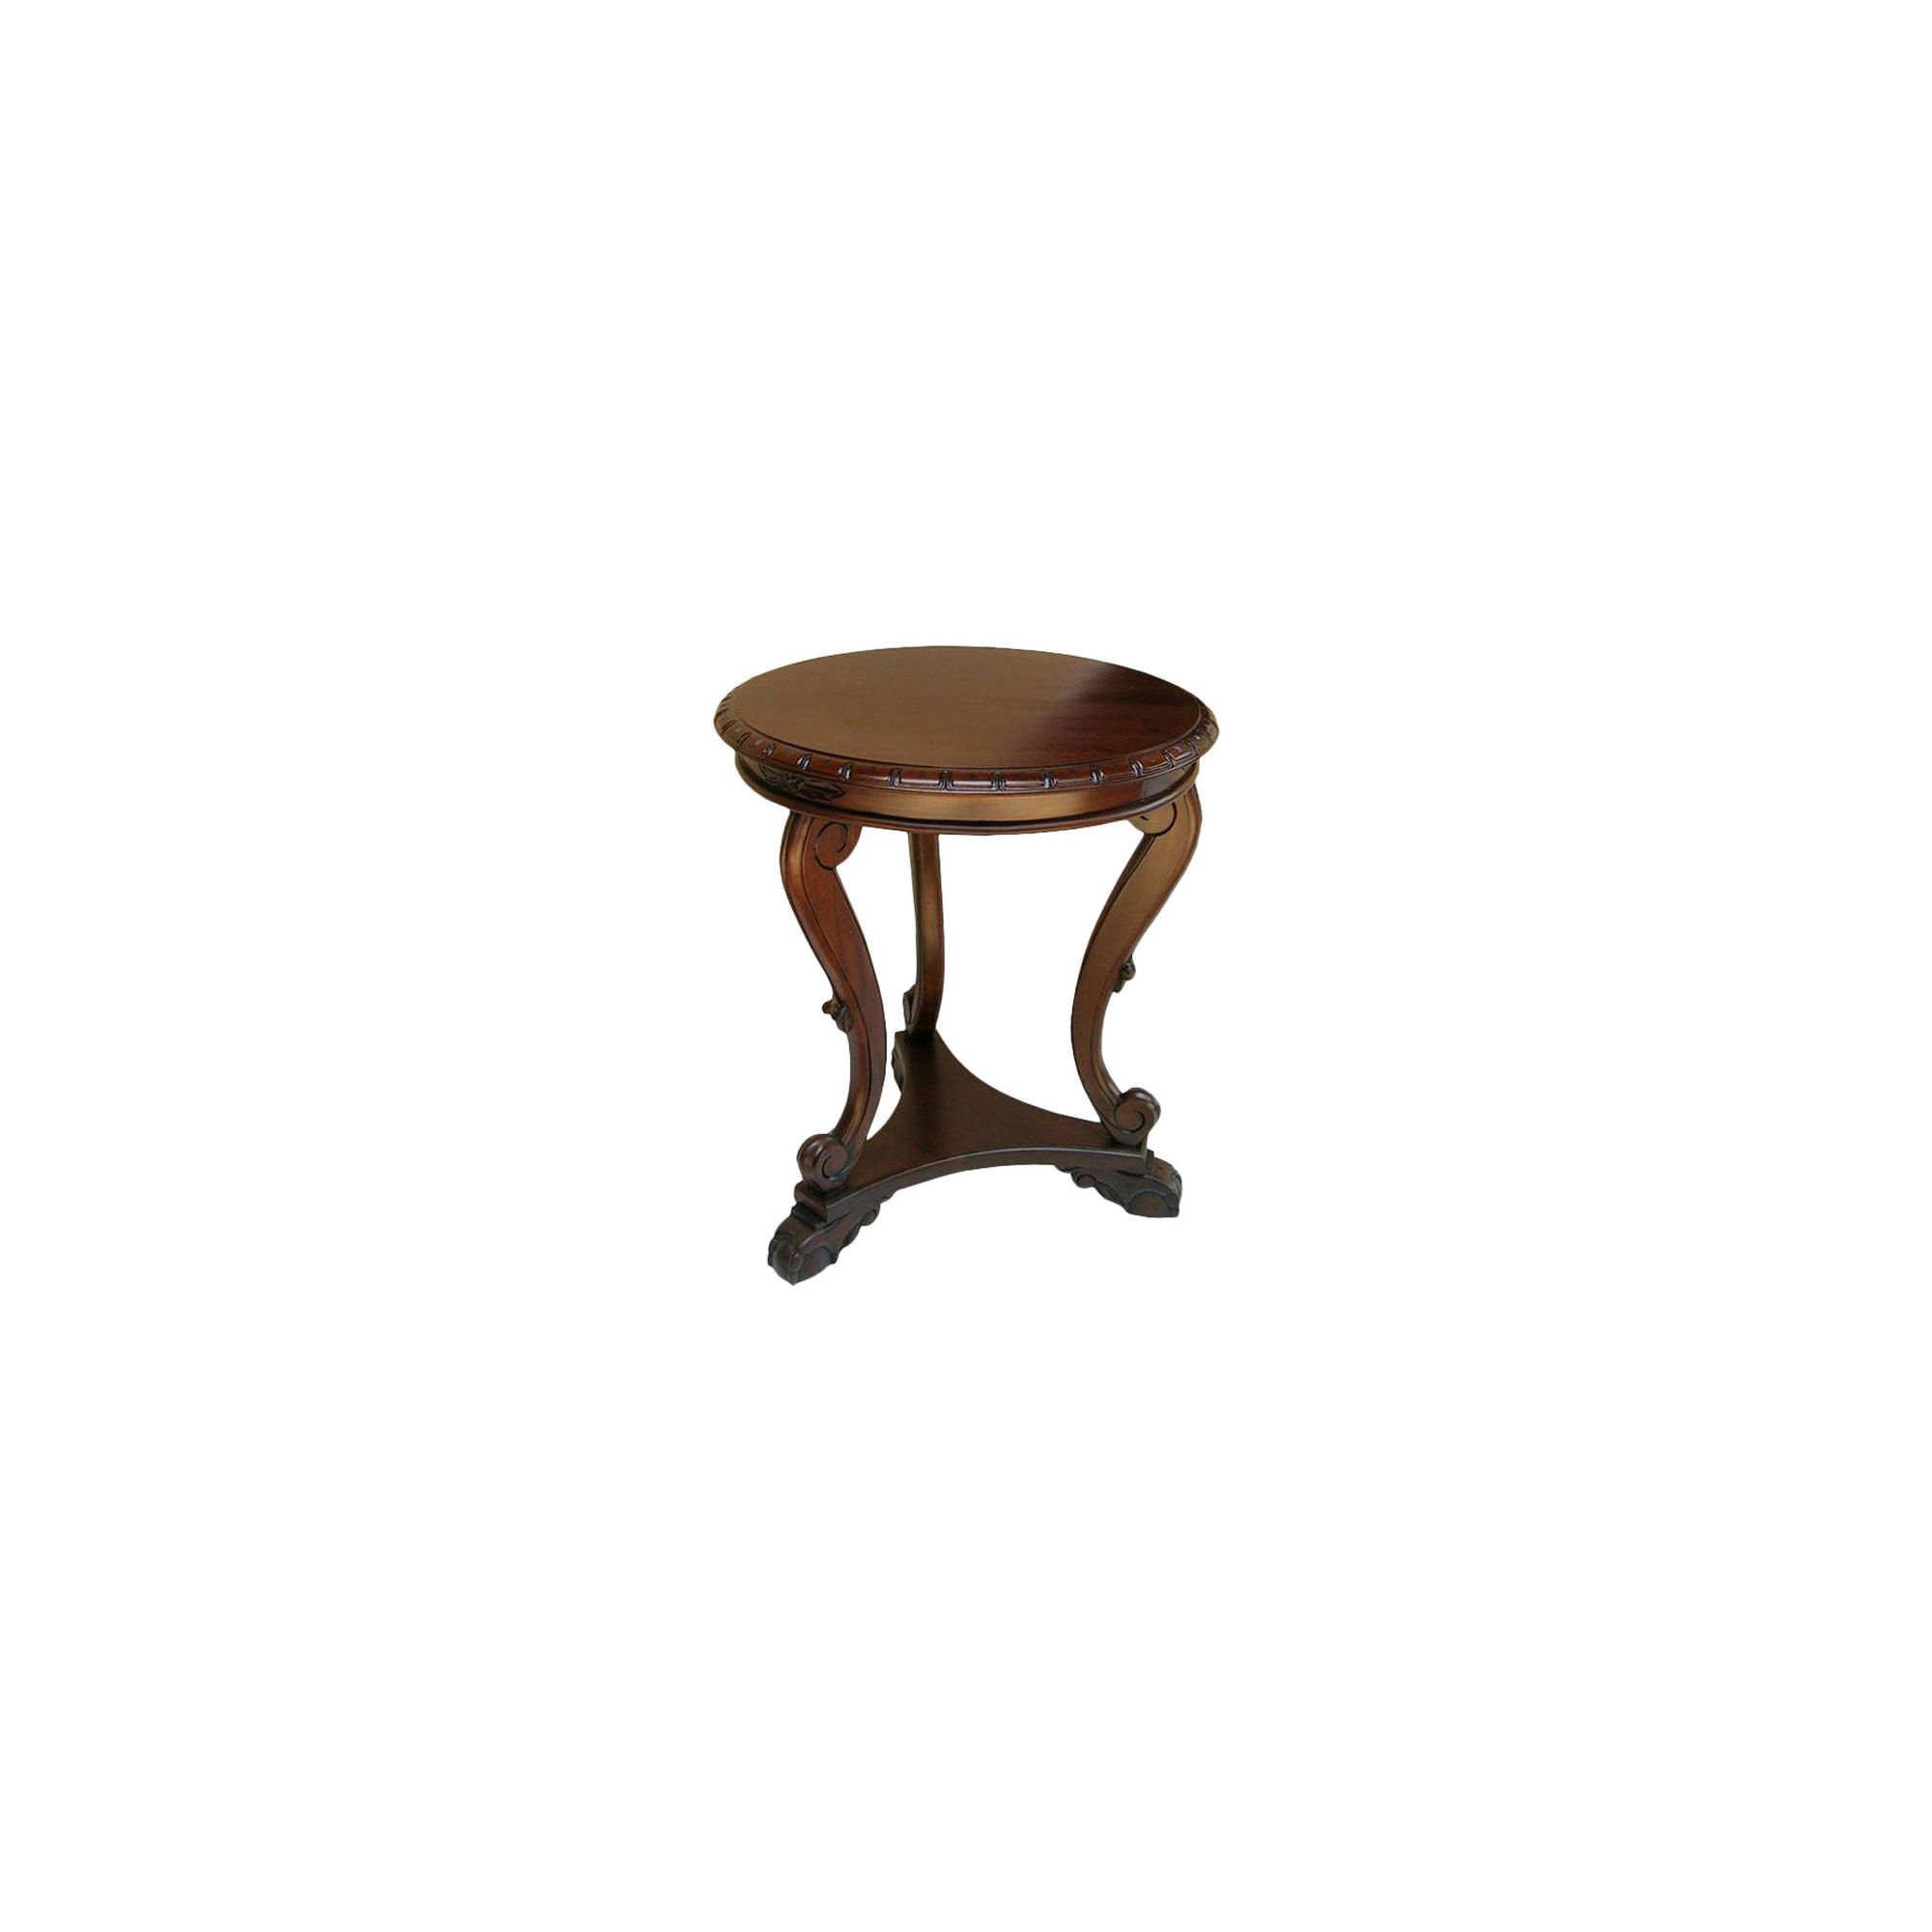 Lock stock and barrel Mahogany Regency Low Side Table in Mahogany at Tesco Direct